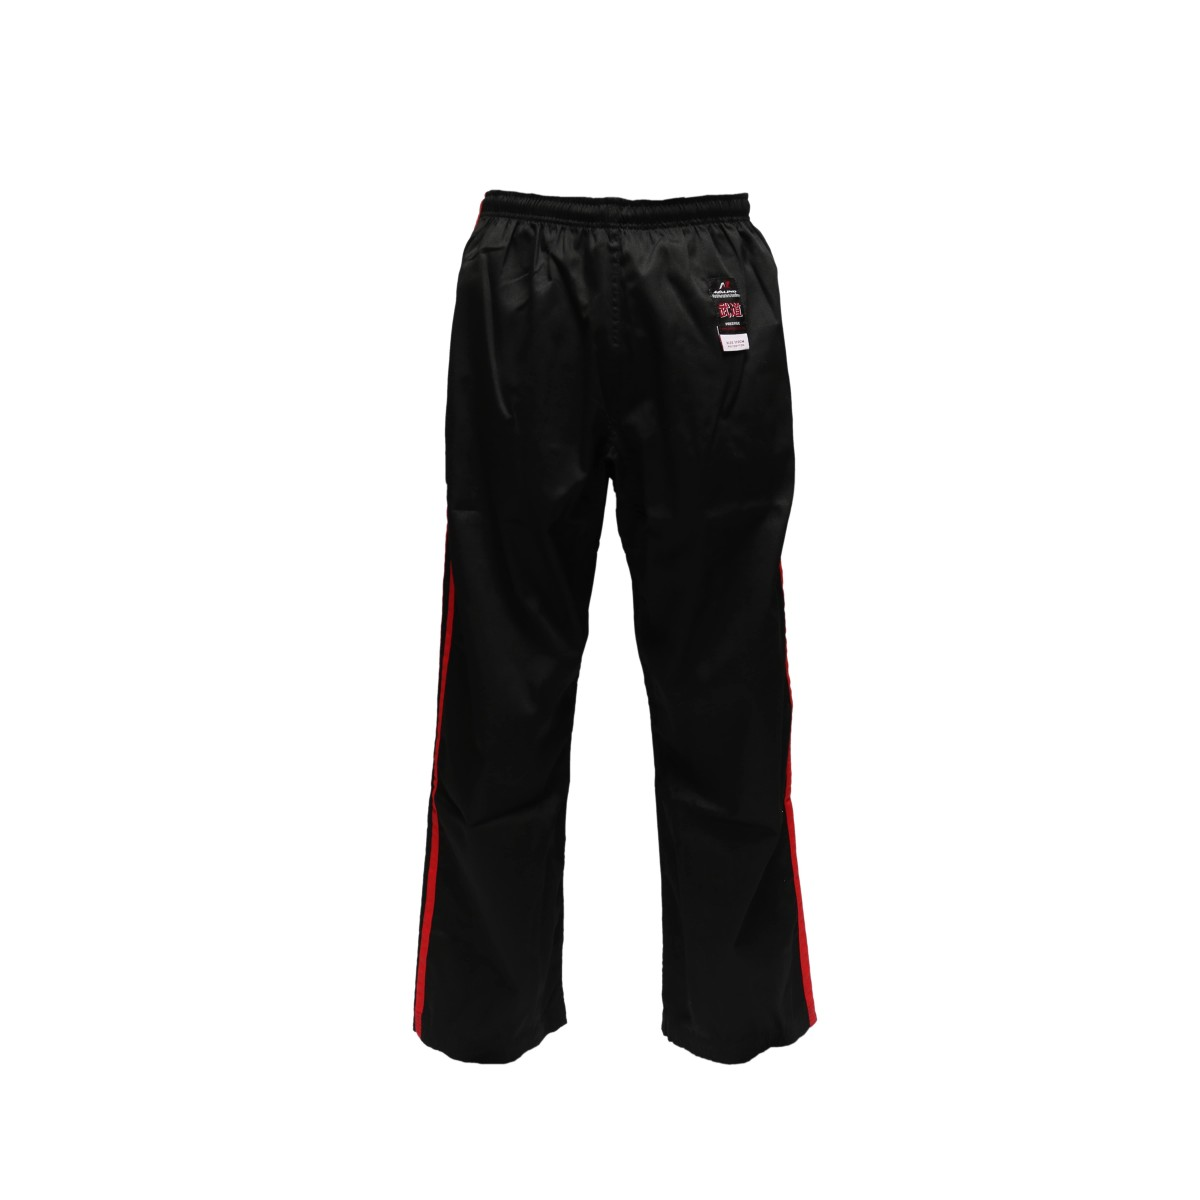 Malino Kick Boxing Martial Art Polycotton Trouser